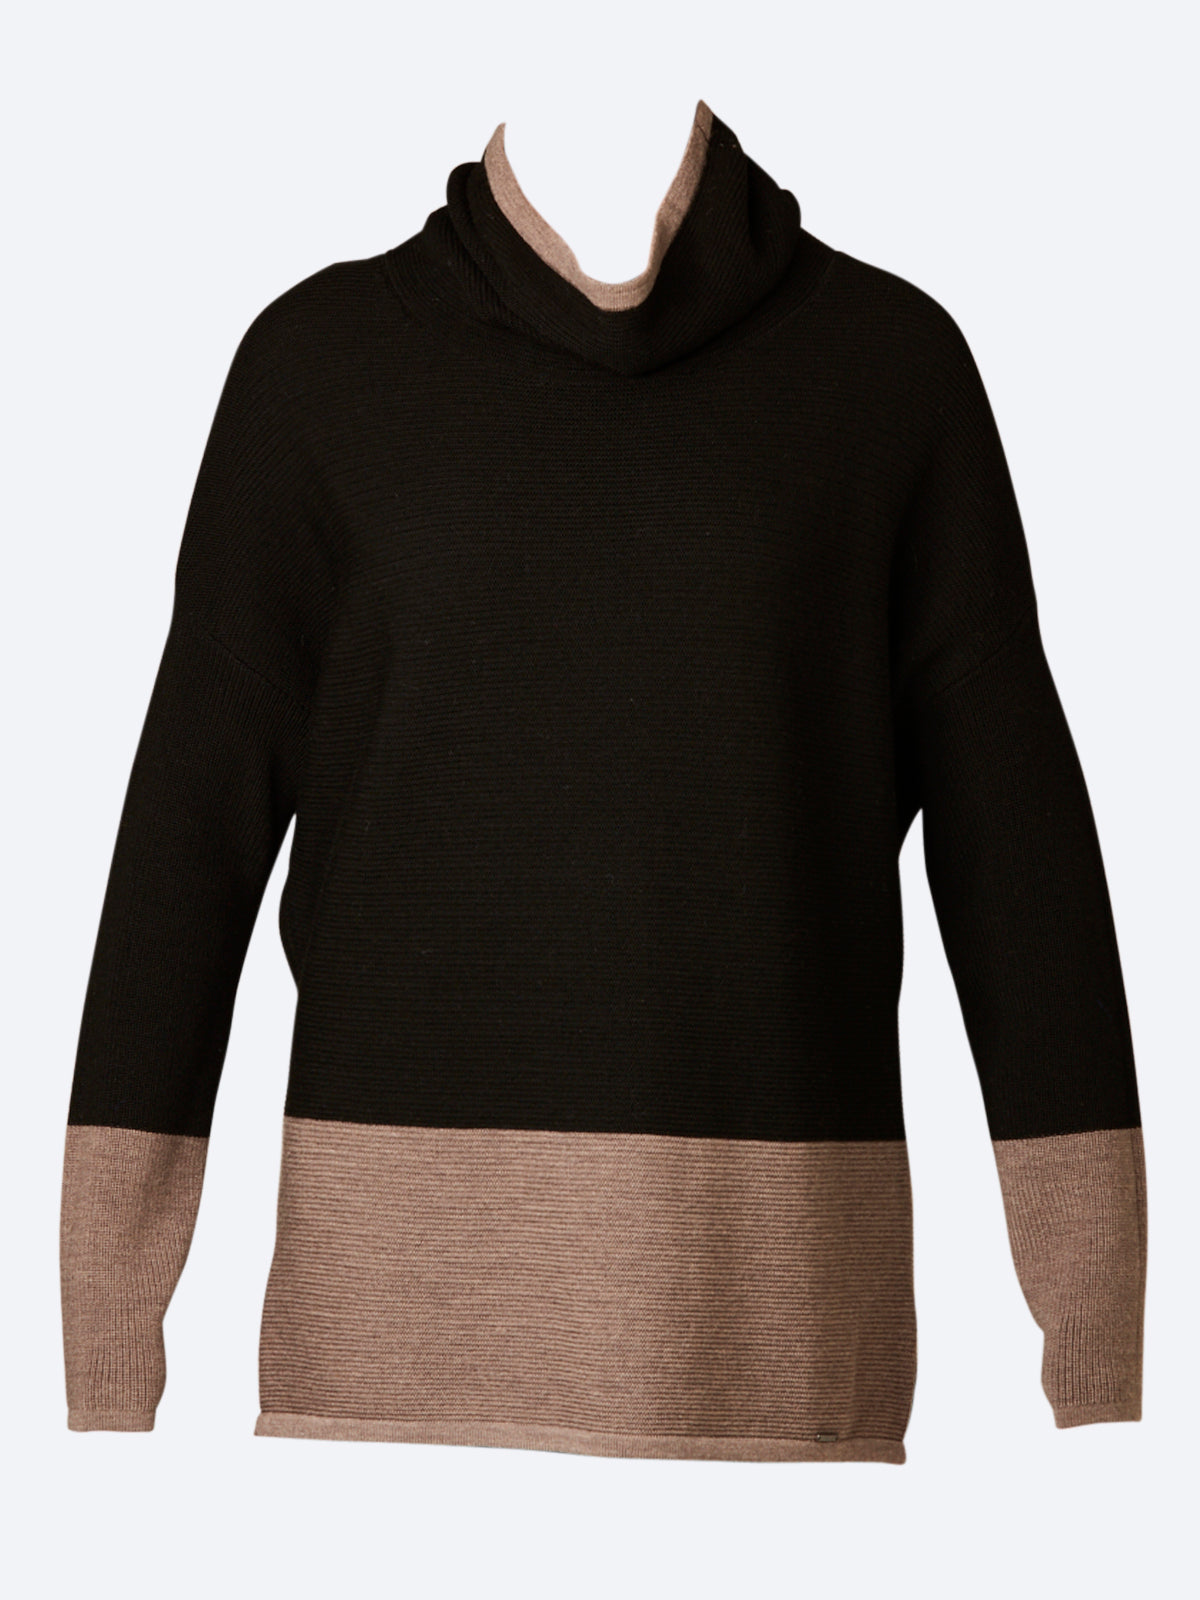 VERGE HAVANA MERINO WOOL SWEATER